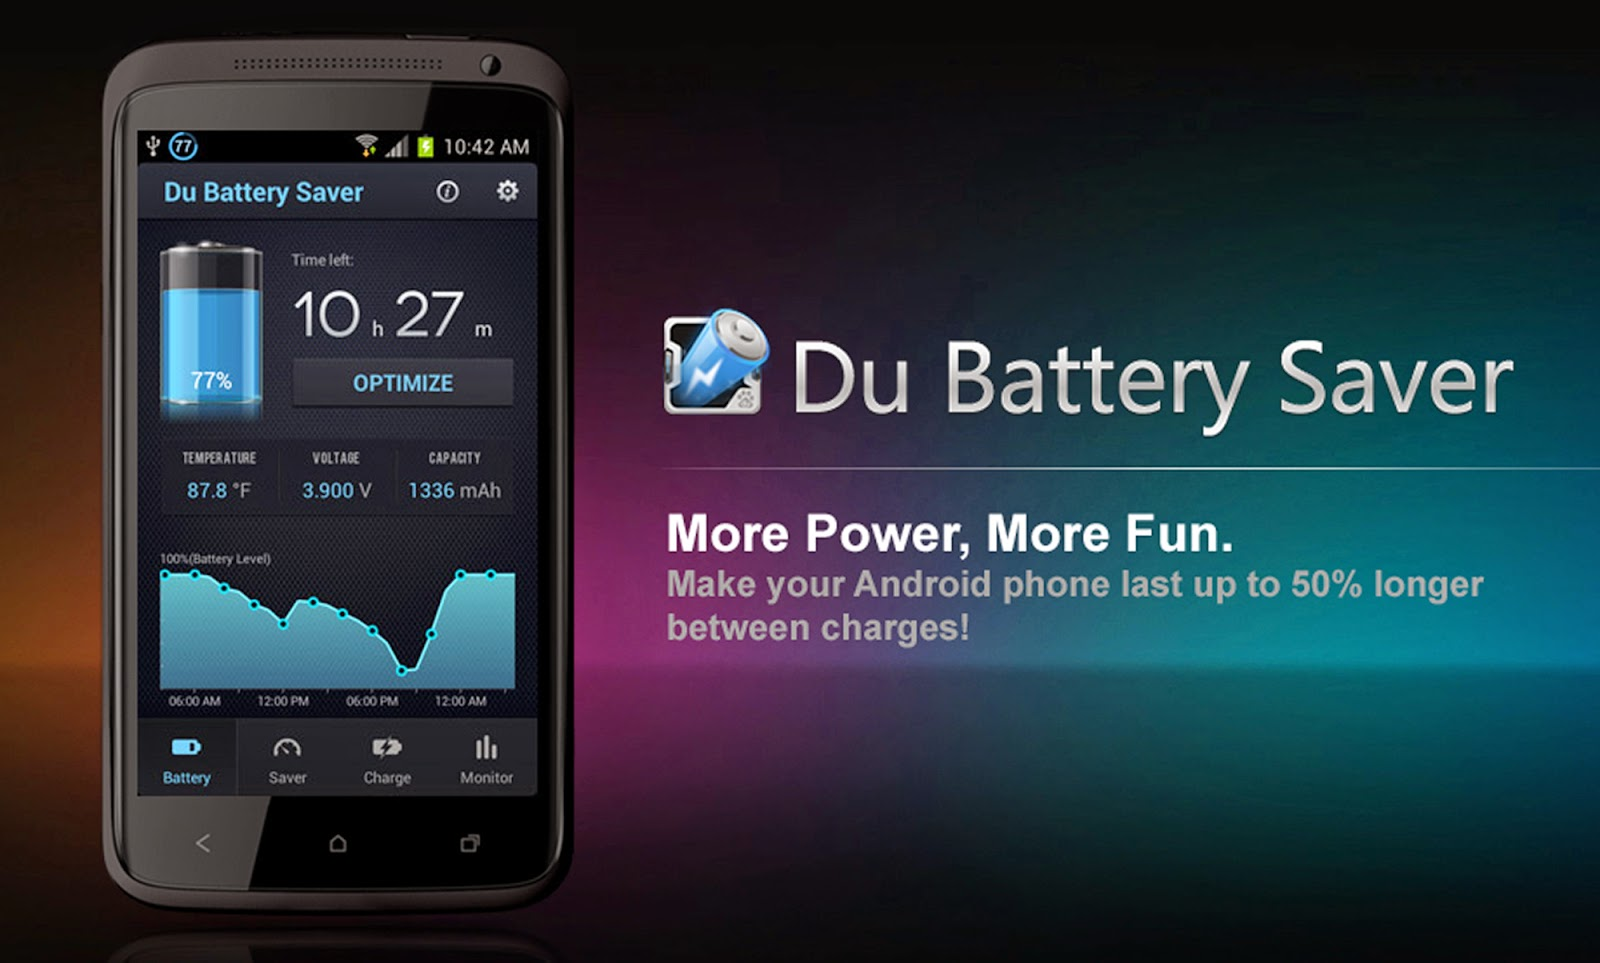 Download Du Battery Saver Apk 3.7.1 (Android)